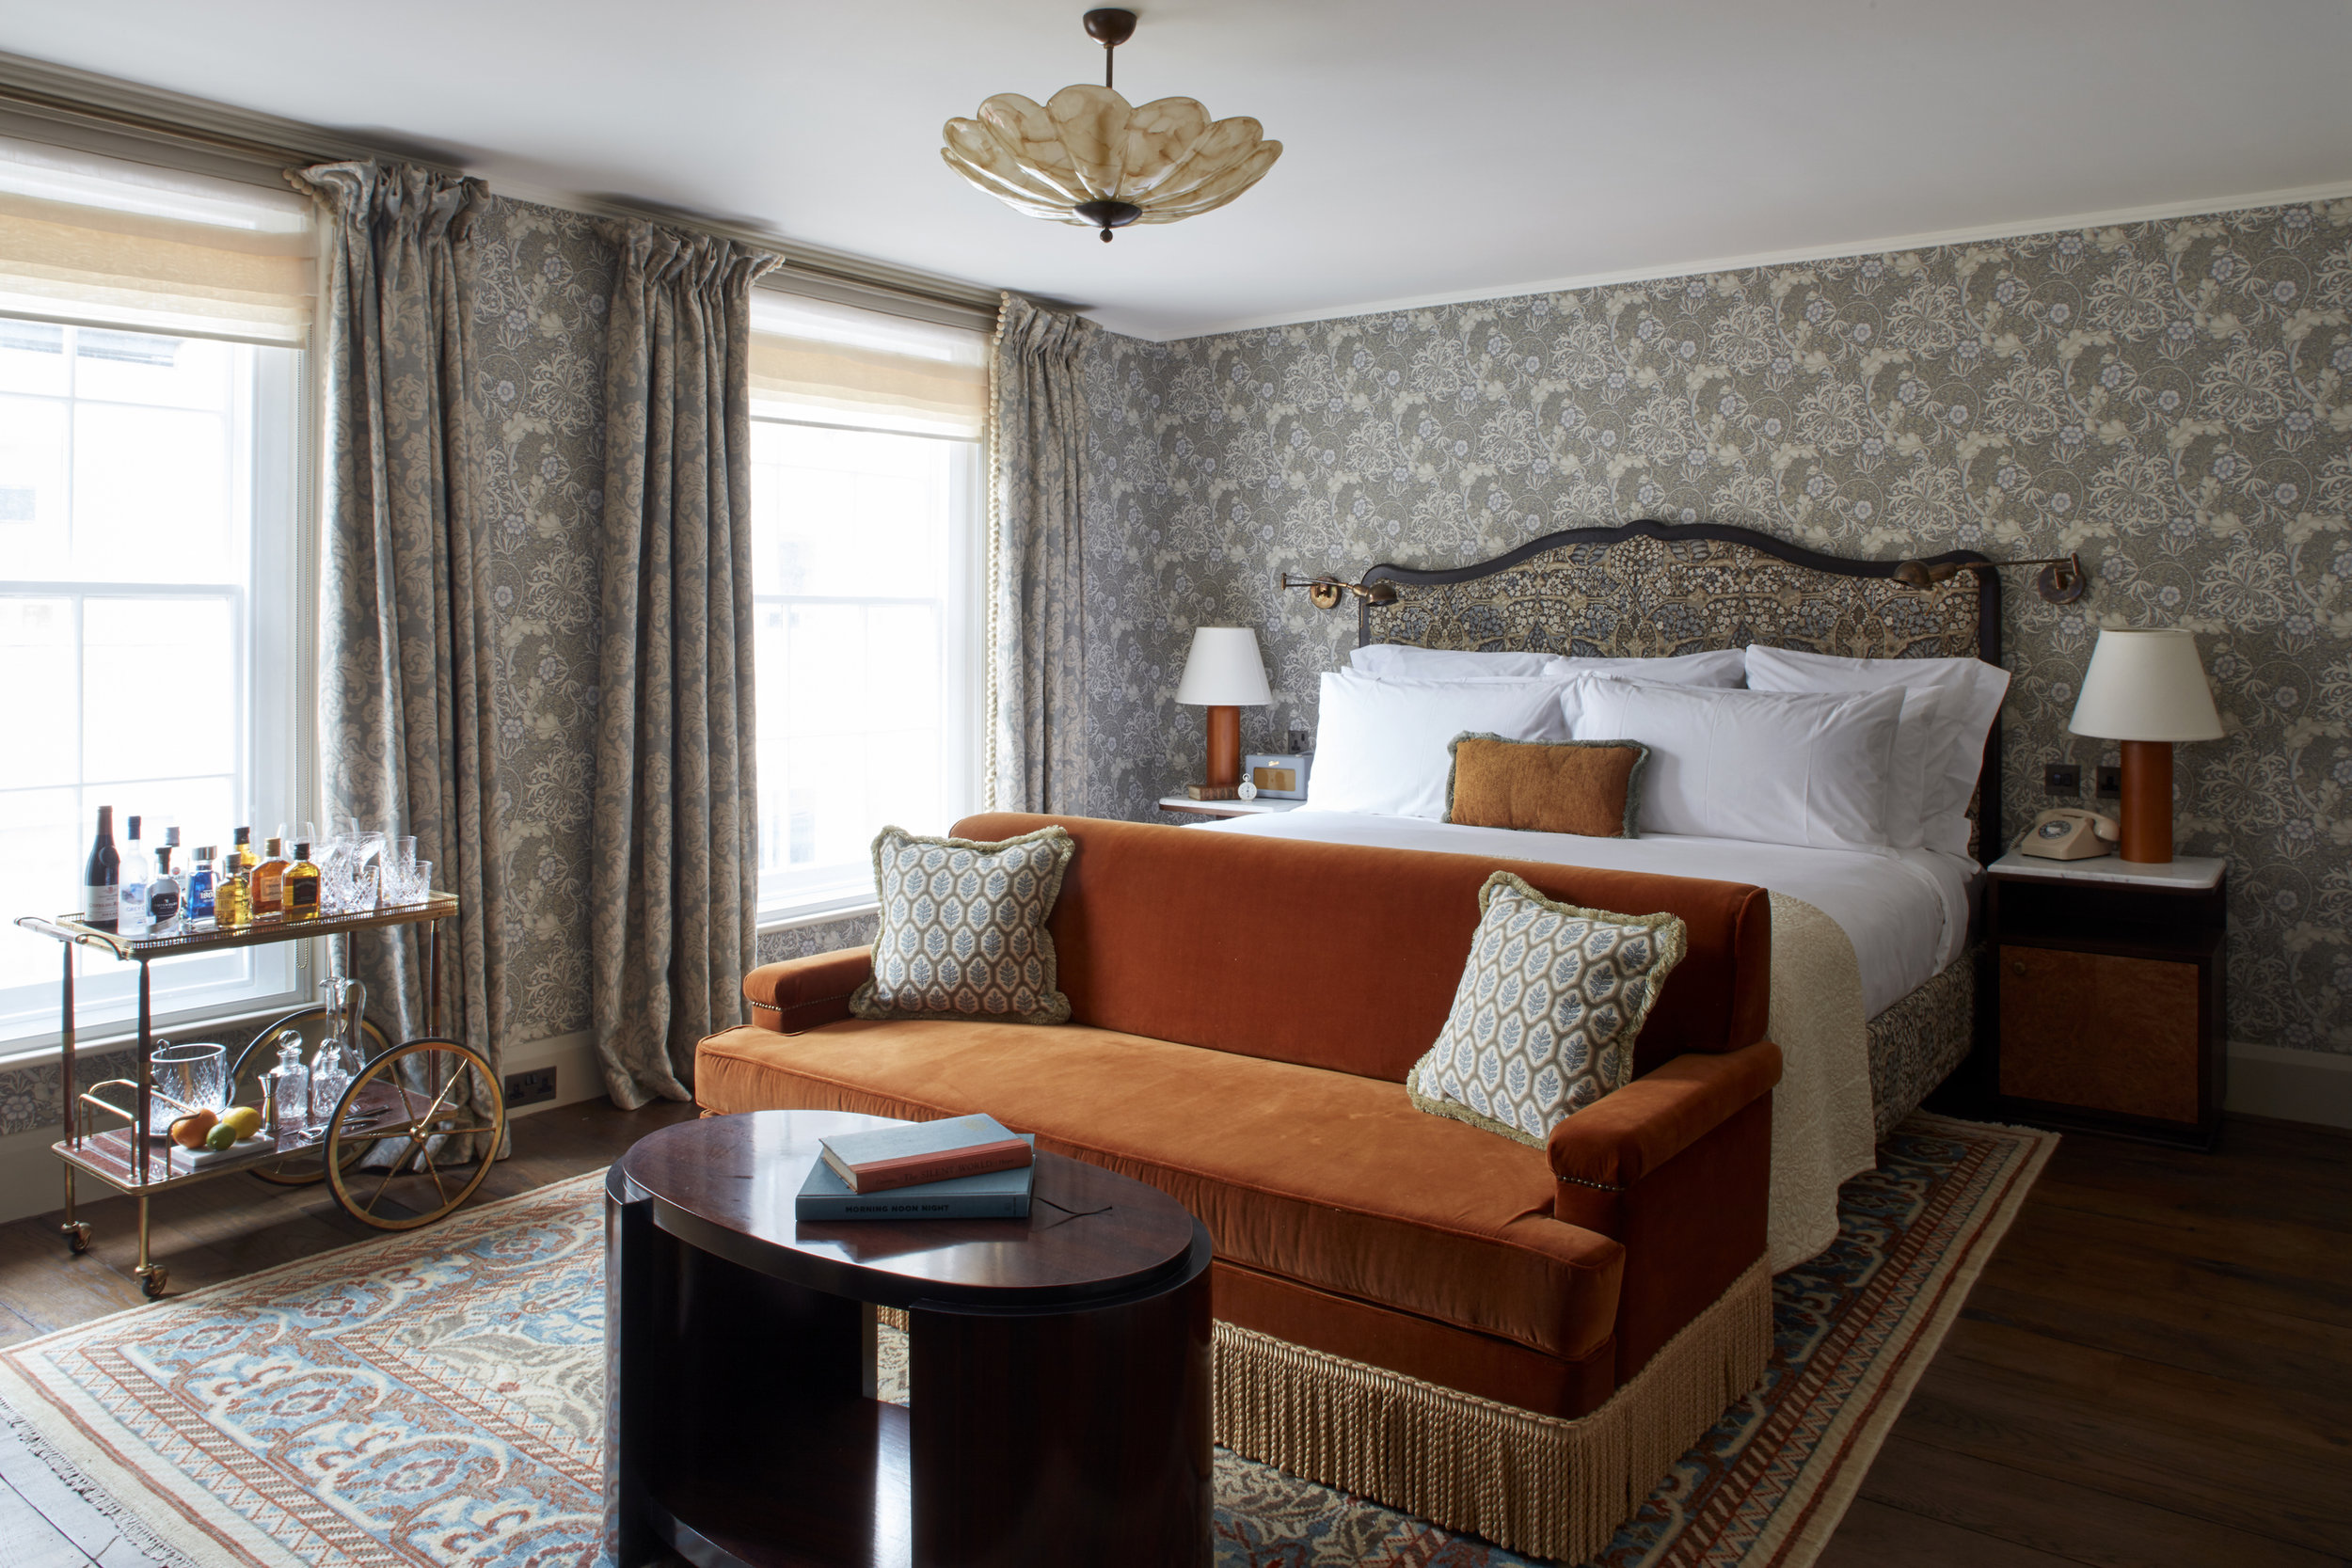 Copyright Soho House Kettners Townhouse Room 27 201712 SB HR 001.jpg